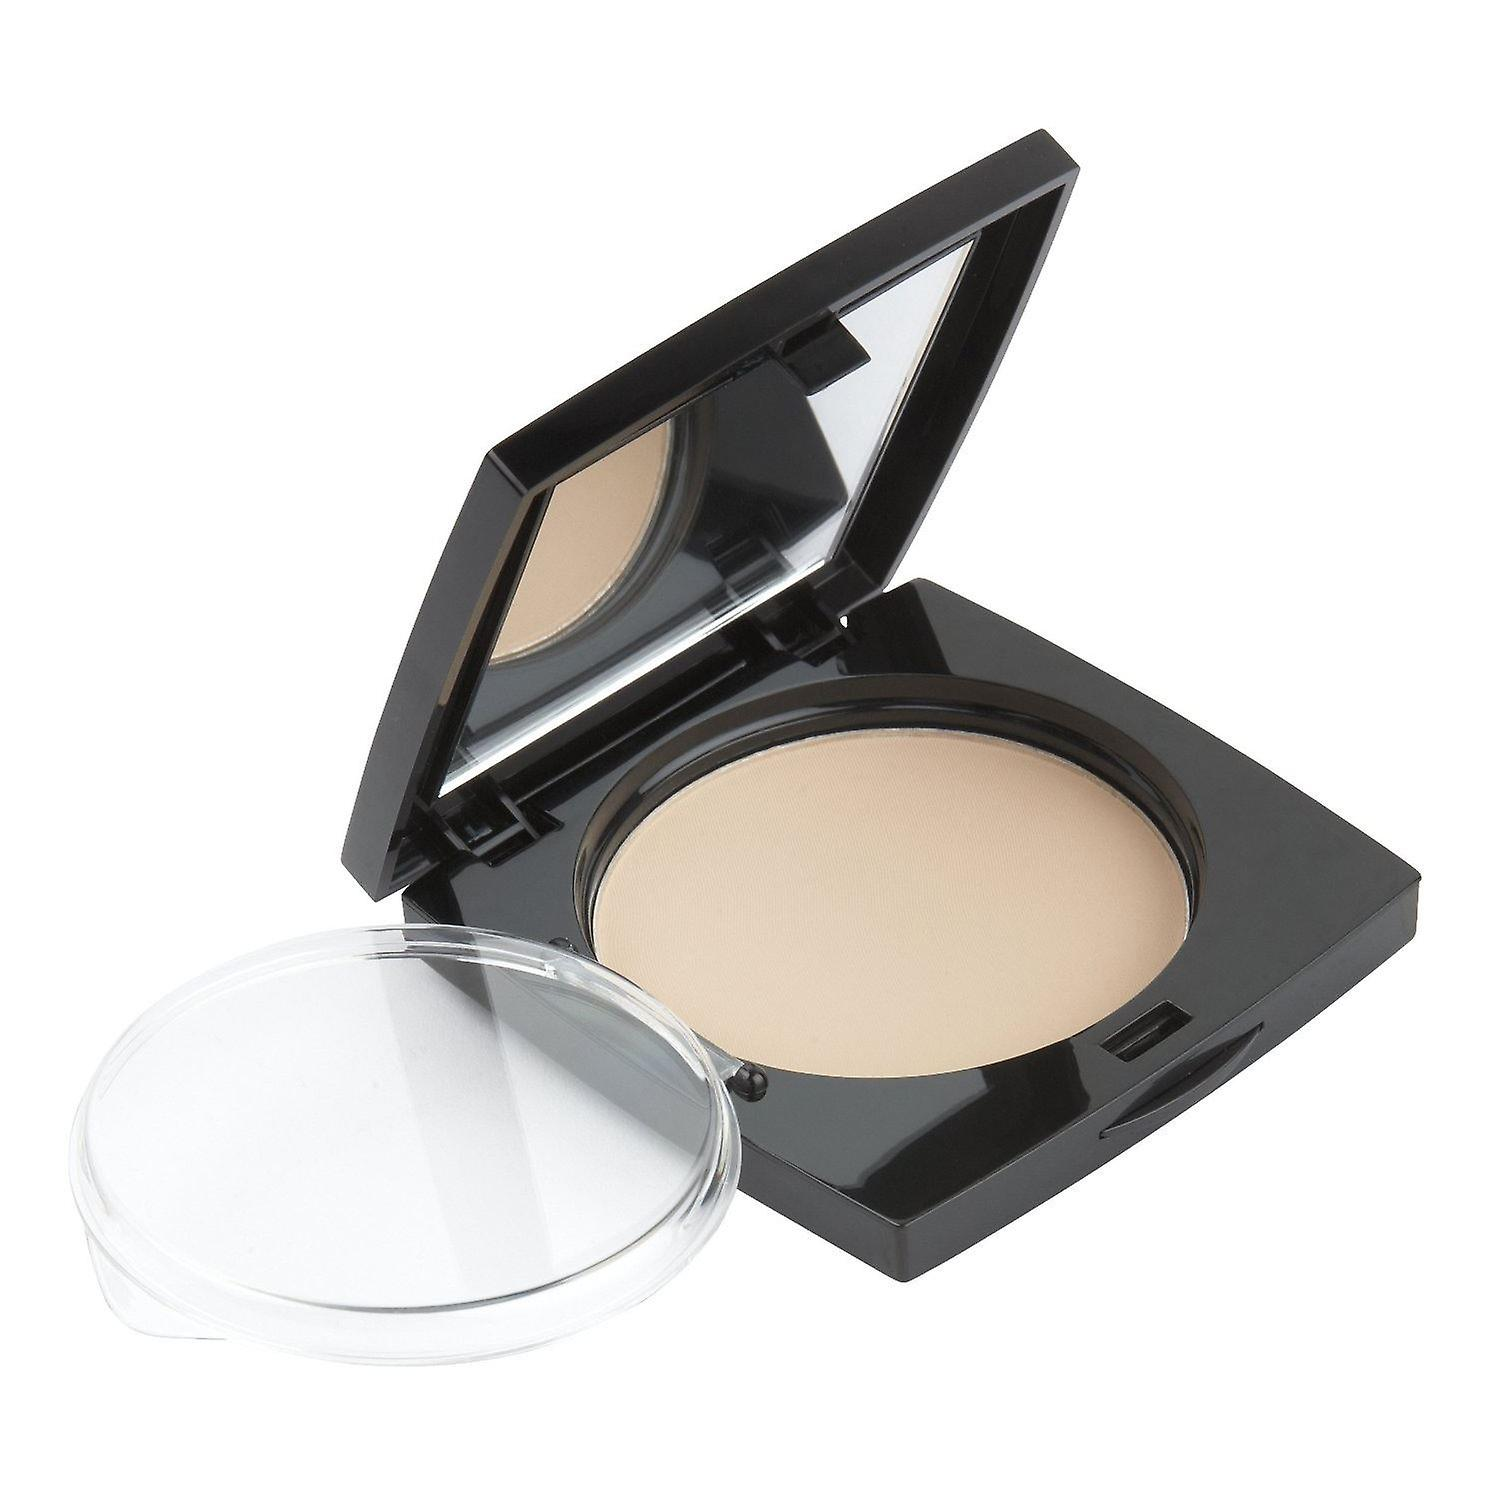 HD BROWS Foundation Pressed Mineral Powder Compact Shade No 2: Light